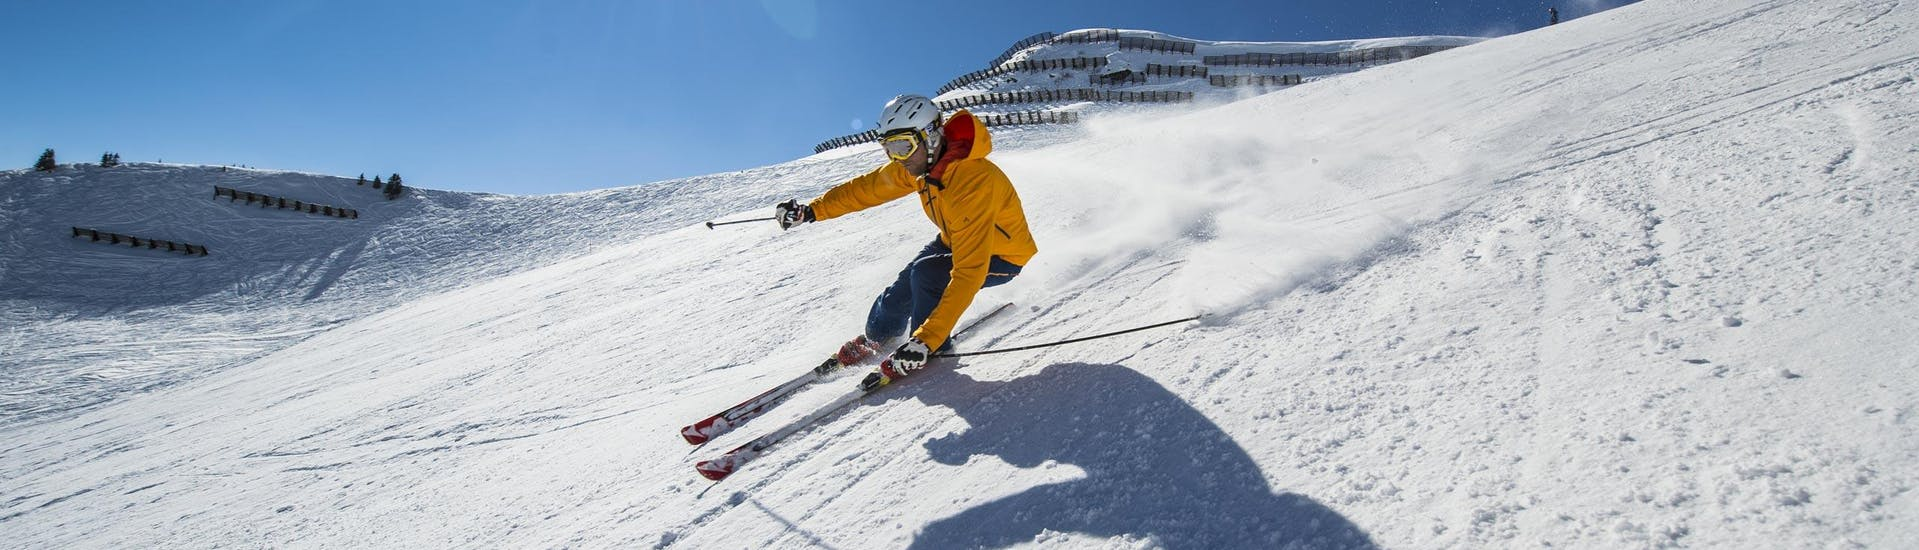 Private Ski Lessons for Adults - All Levels: A skier is skiing down a sunny ski slope while participating in an activity offered by Swiss Ski School Champéry.